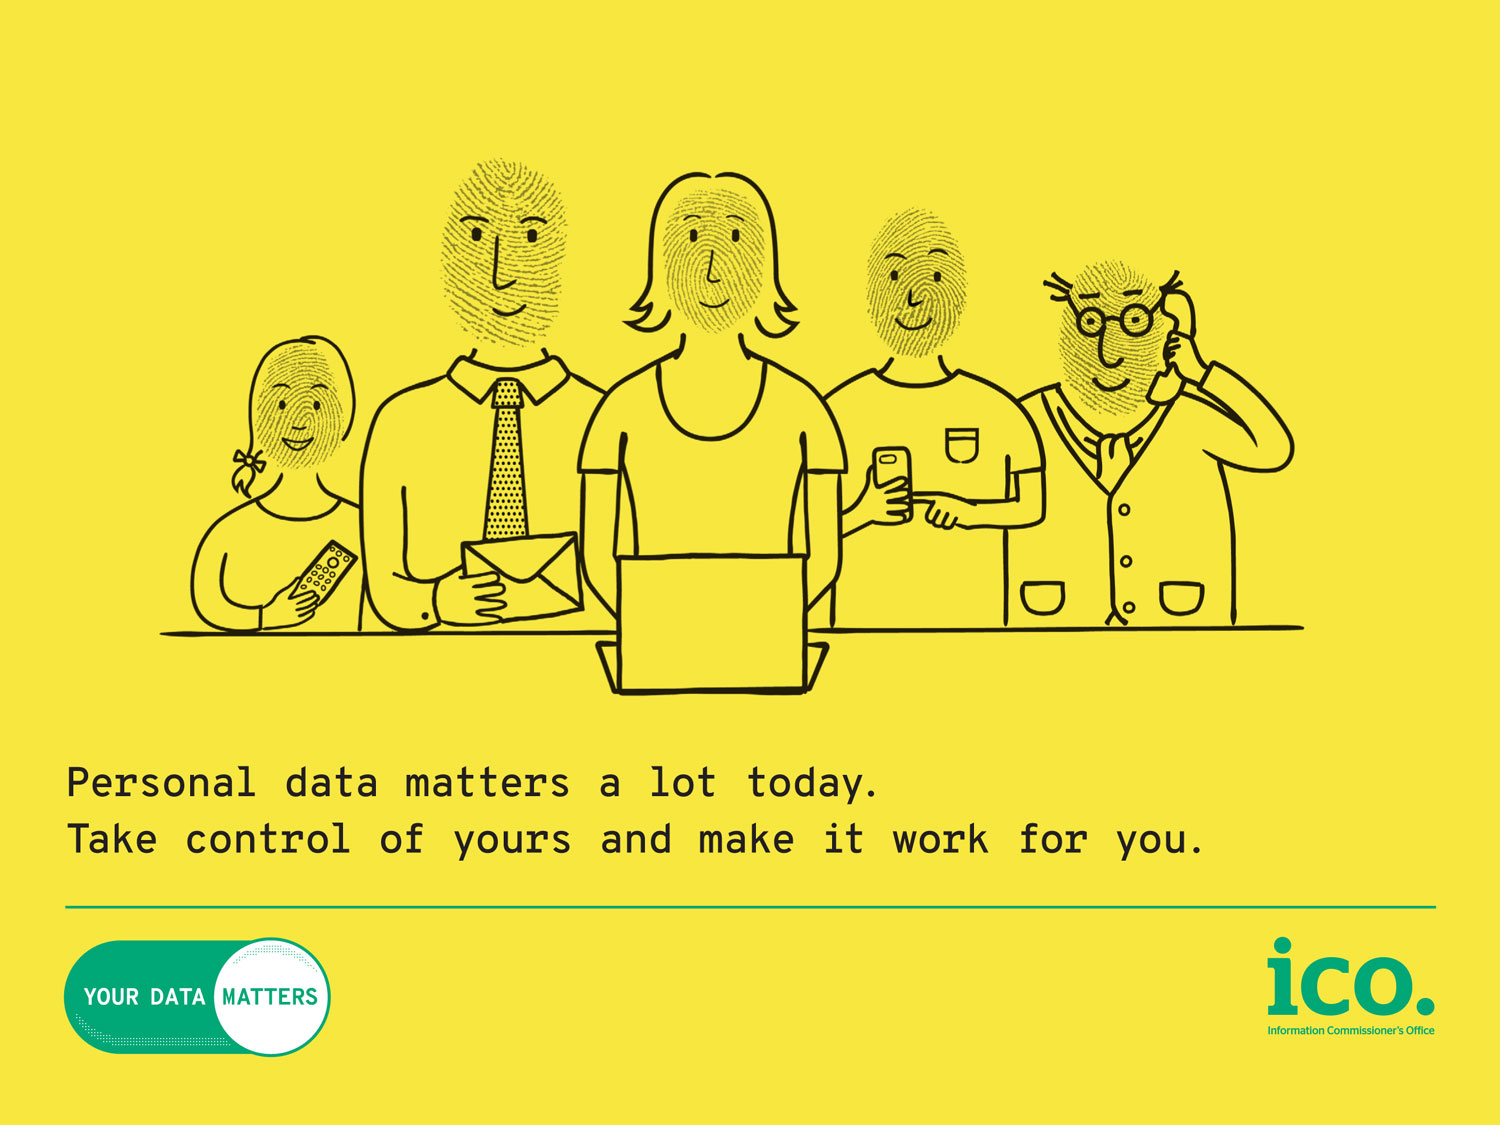 Your data matters poster